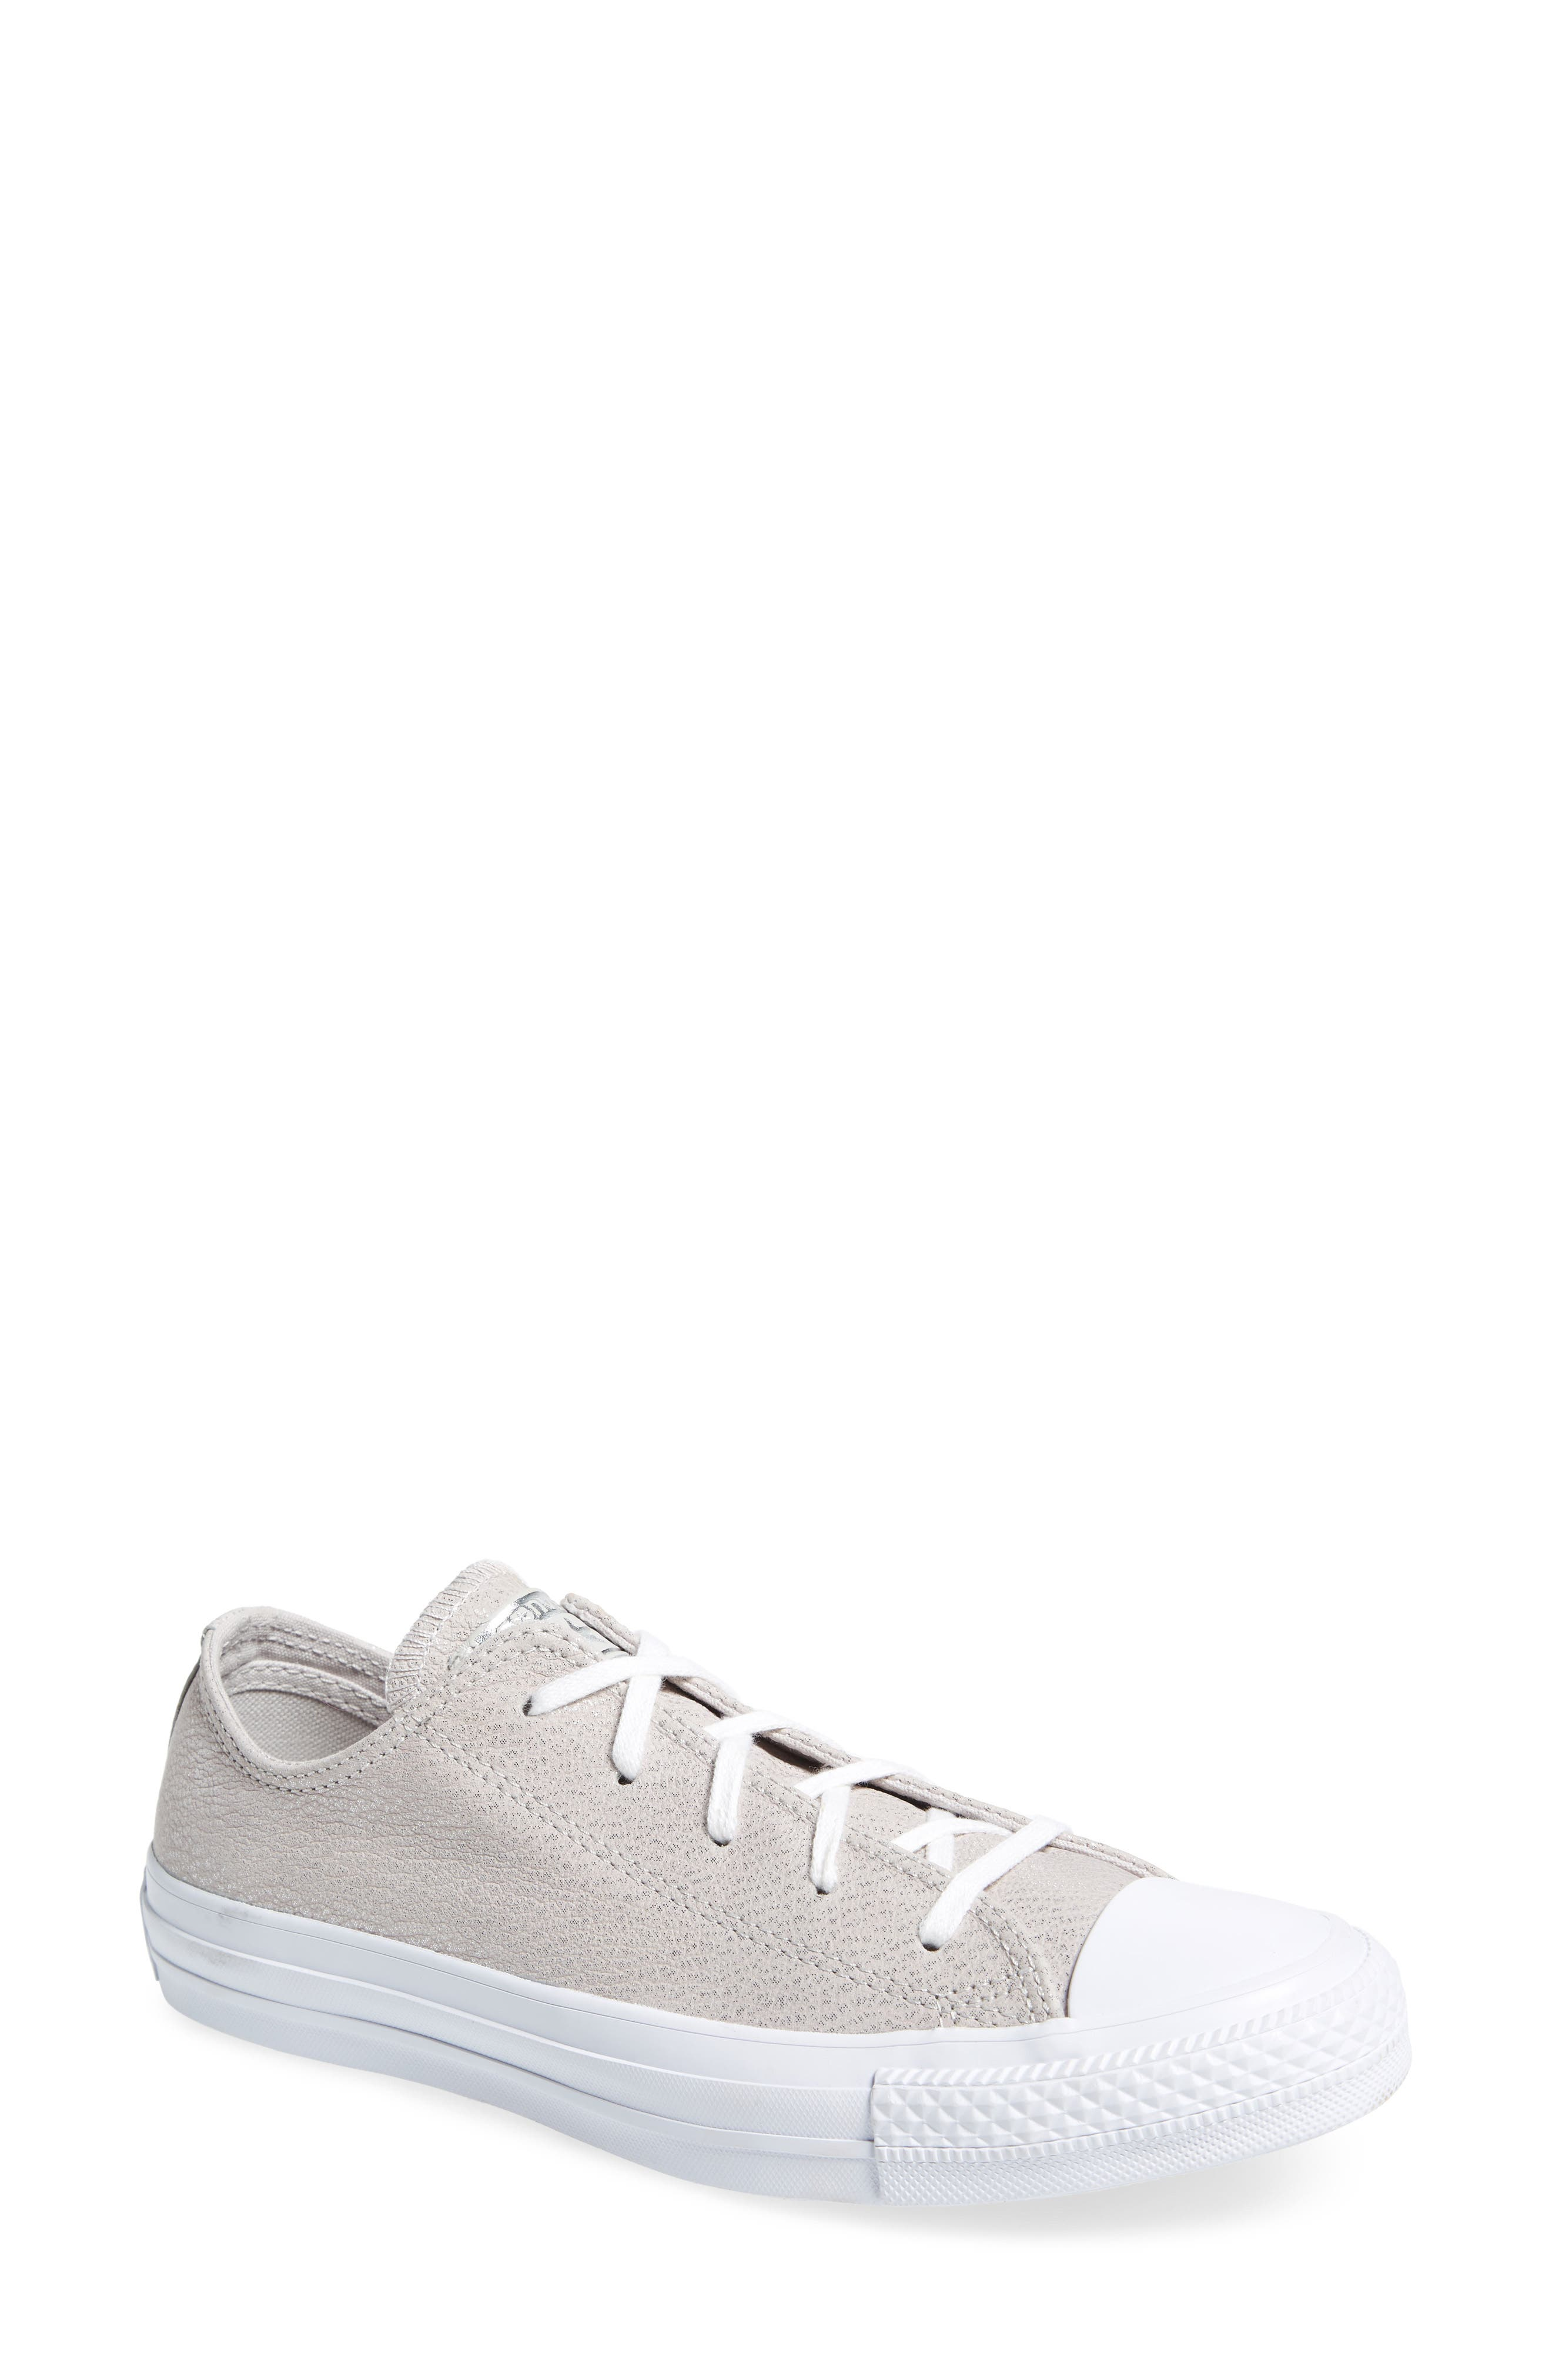 Chuck Taylor<sup>®</sup> All Star<sup>®</sup> Tipped Metallic Low Top Sneaker,                             Main thumbnail 1, color,                             Pale Putty